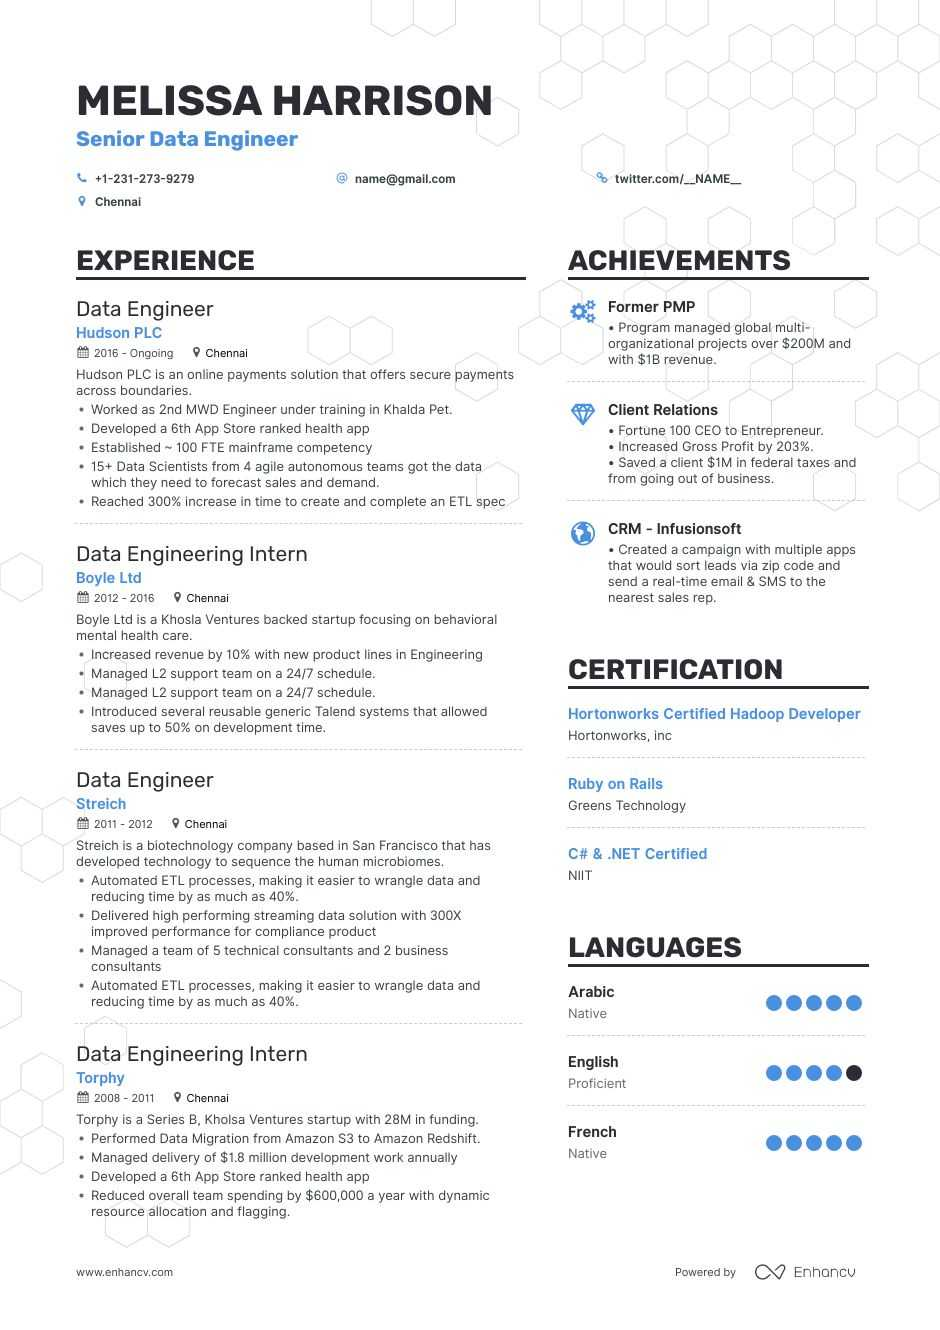 data engineer resume examples do and don ts for enhancv best software sample correction Resume Best Software Engineer Resume Sample